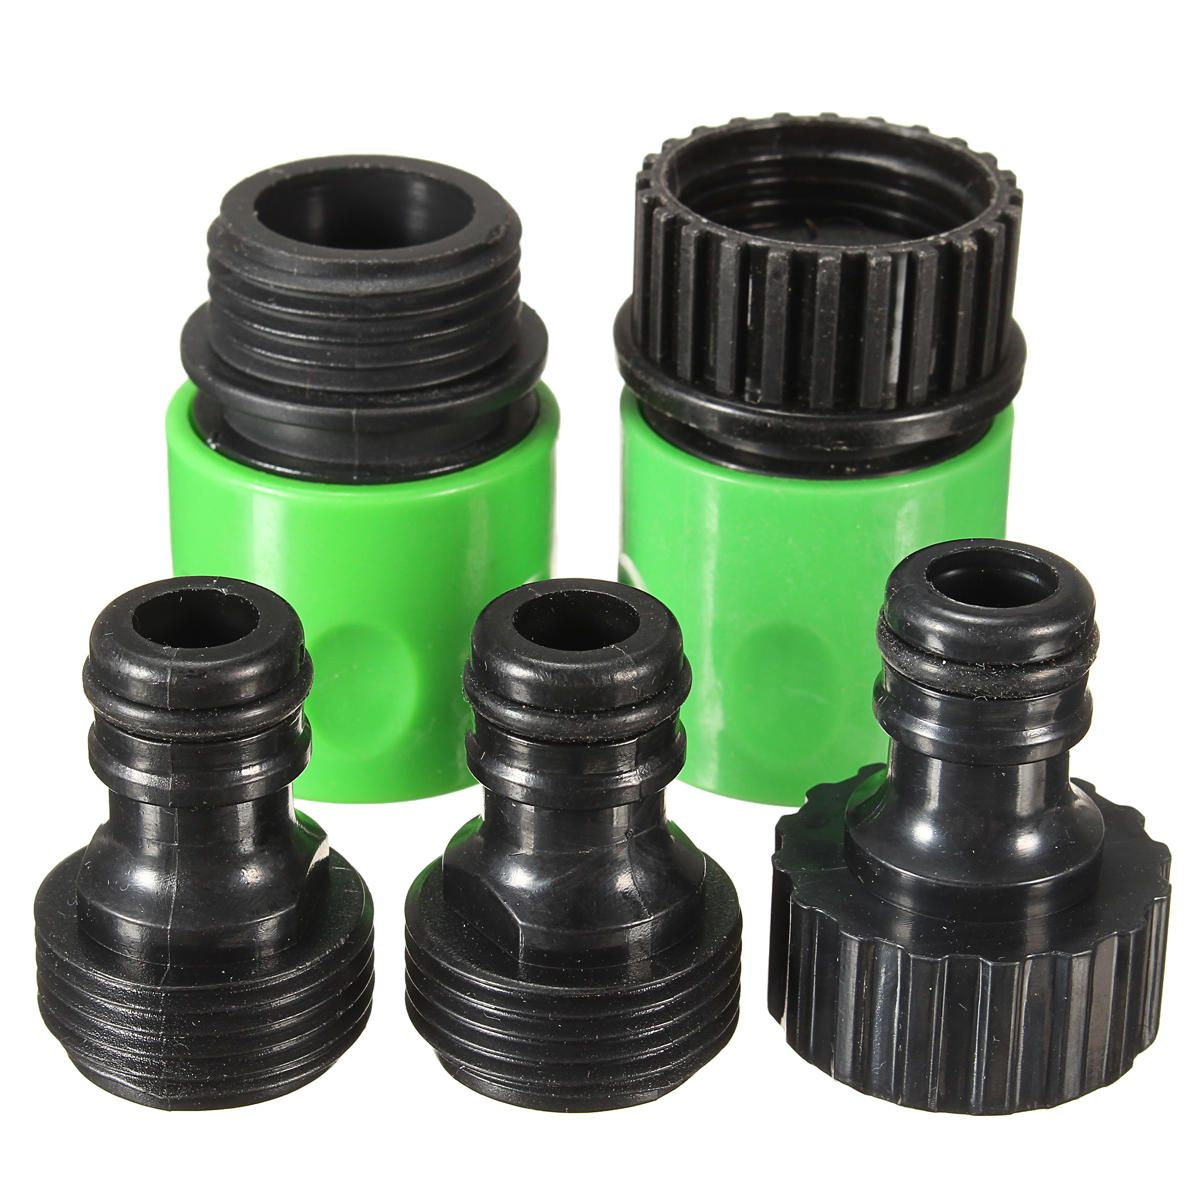 5Pcs Rubber Hose Water Faucet Tap Adapter Rubber Nozzle Washing Pipe ...